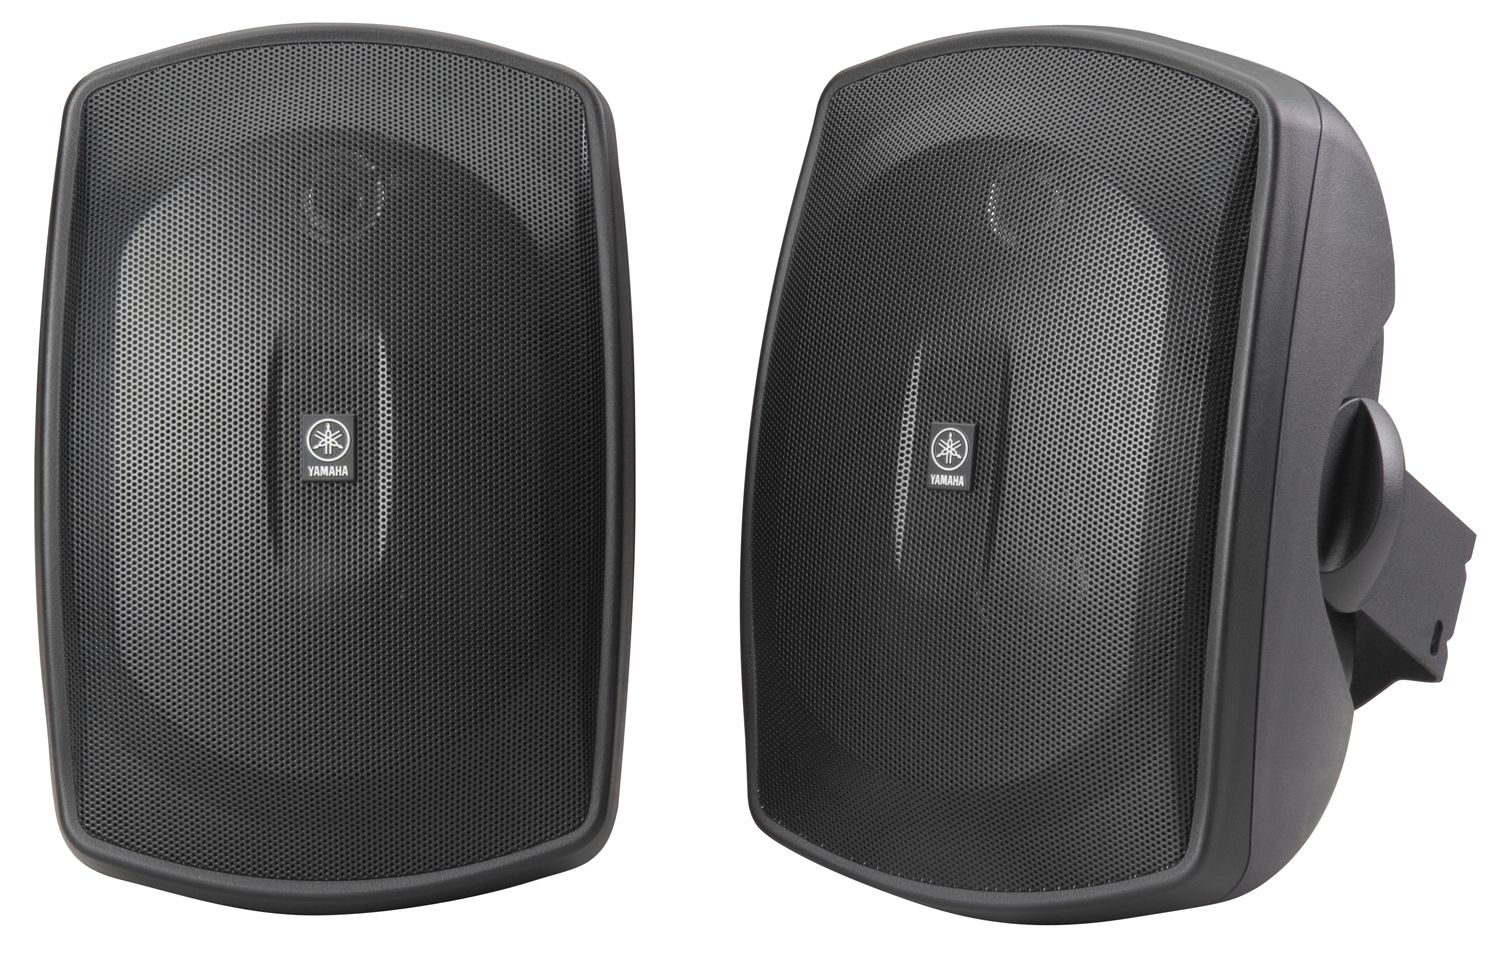 Yamaha ns aw190 5 2 way outdoor speaker black pair for Yamaha ns 50 speaker pack